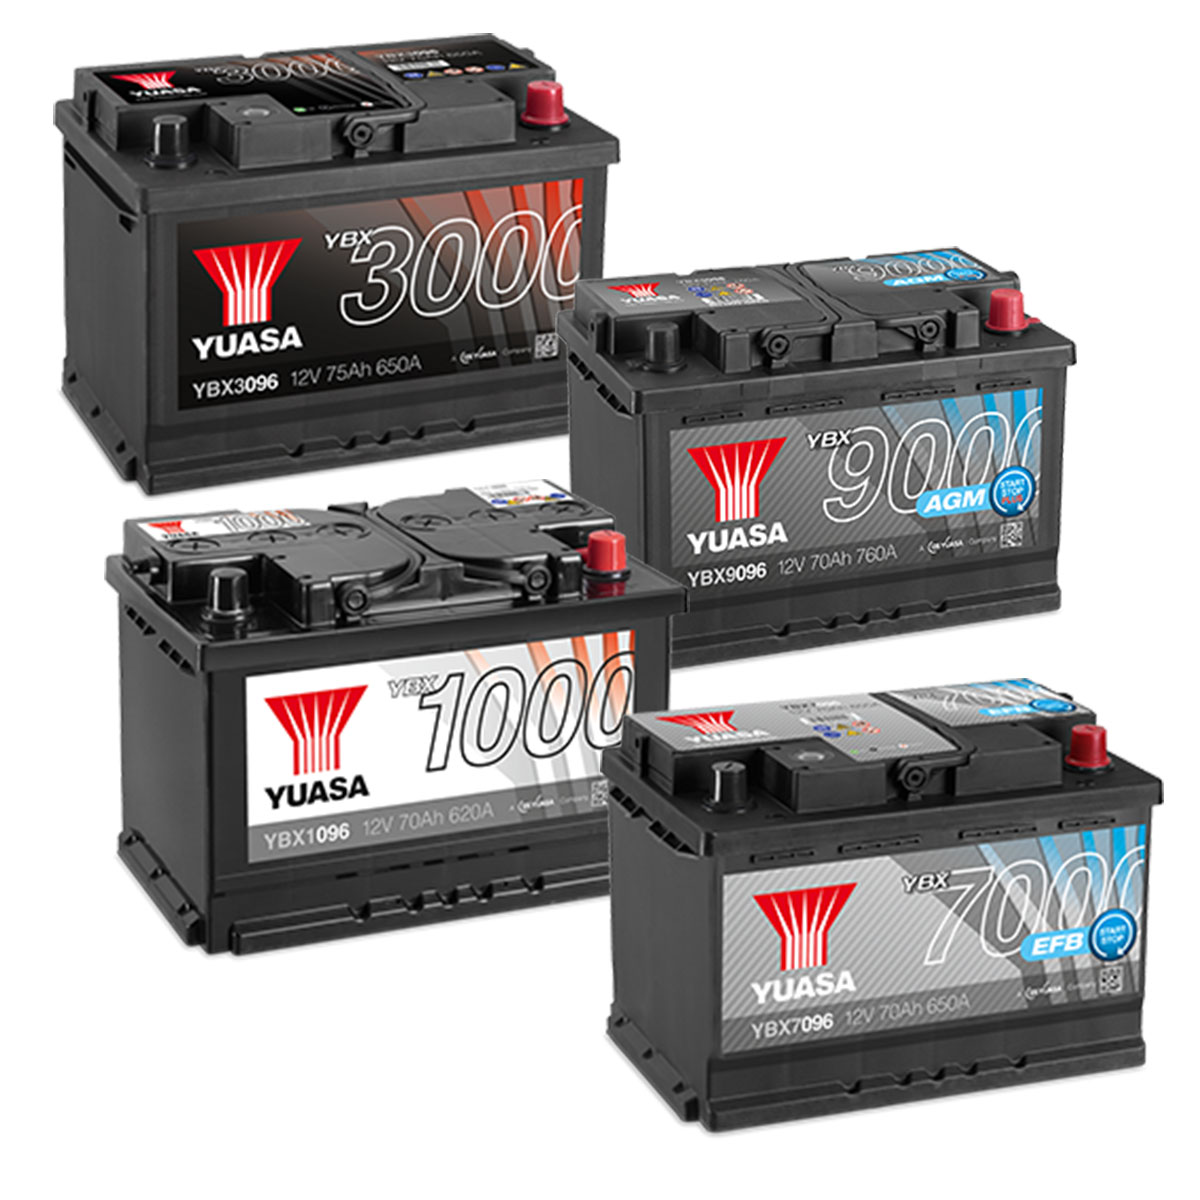 yuasa-automotive-batteries.jpg